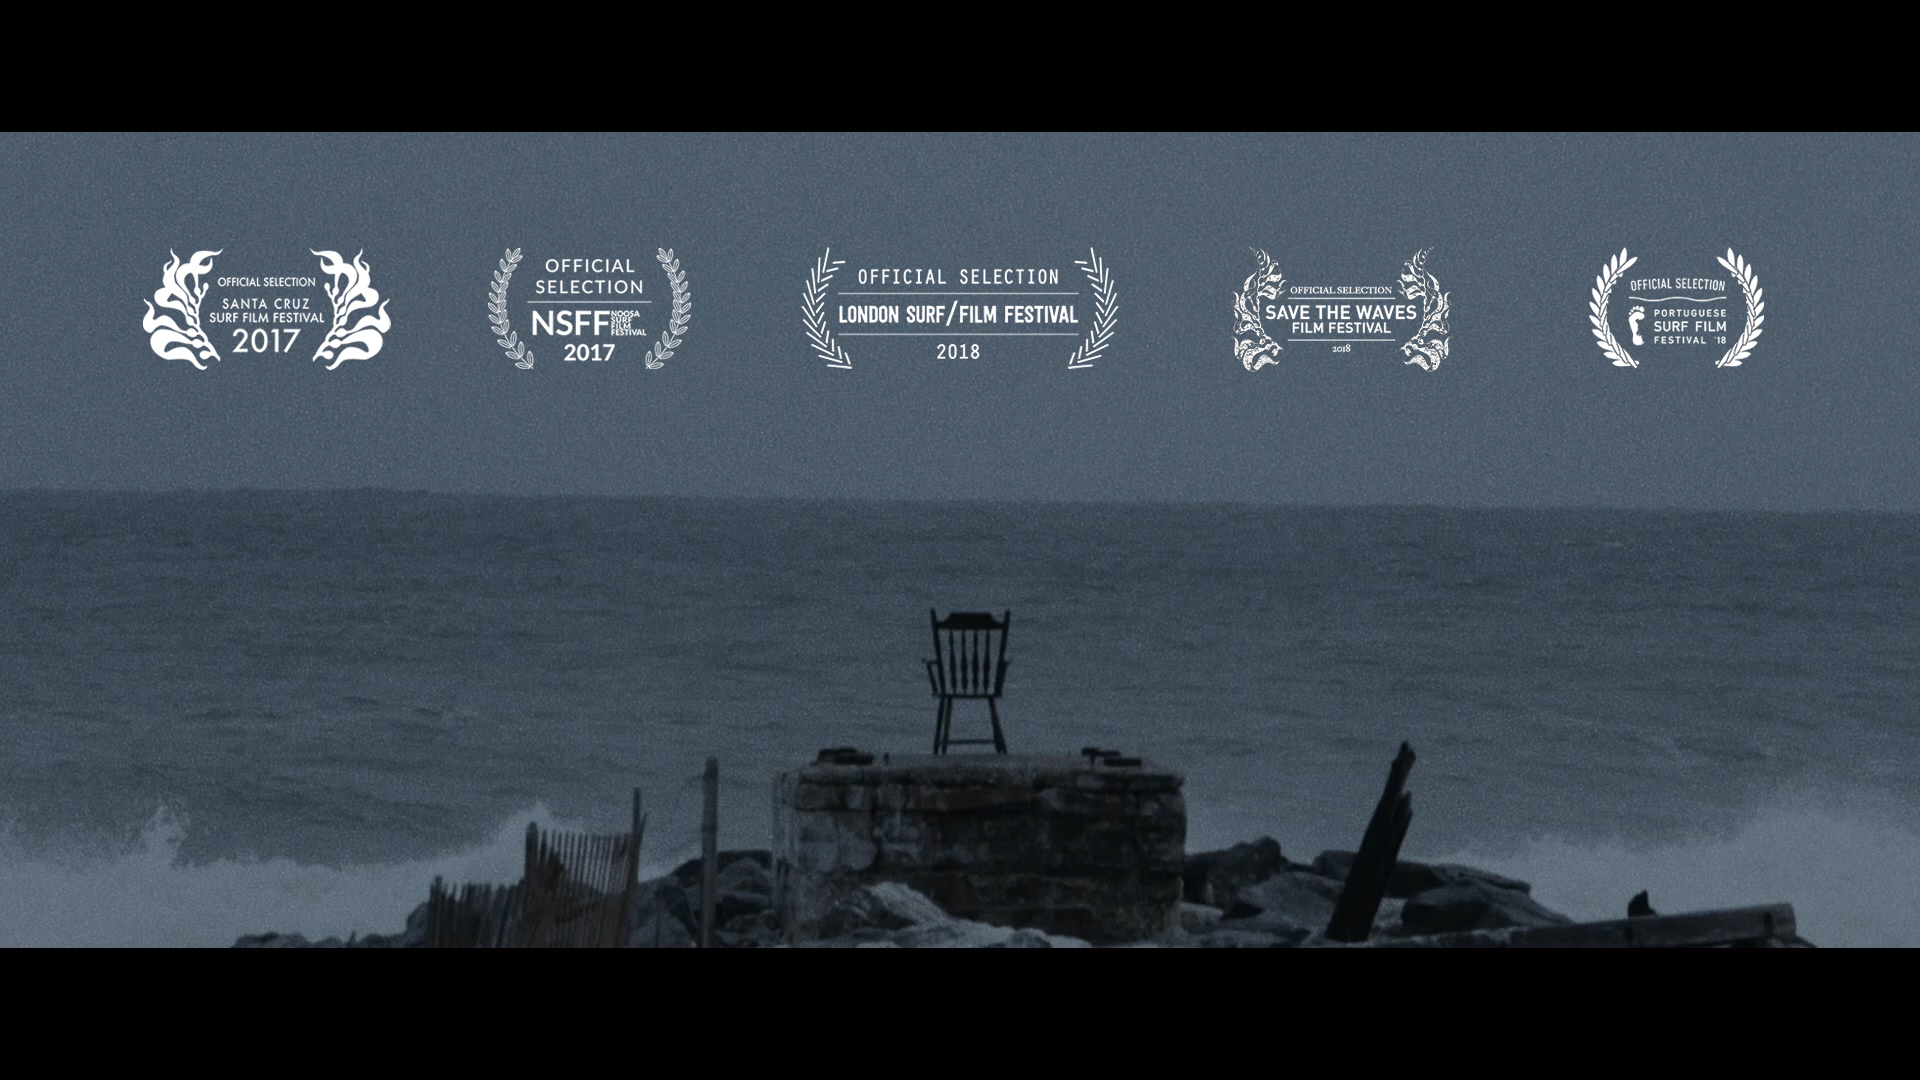 - time & tide (documentary)writer, director: drew maloneyfeaturing: joe marinellotrailer editor matt cartersound design & mix: sam costellocolorist: zack wilpon @ the mill ny